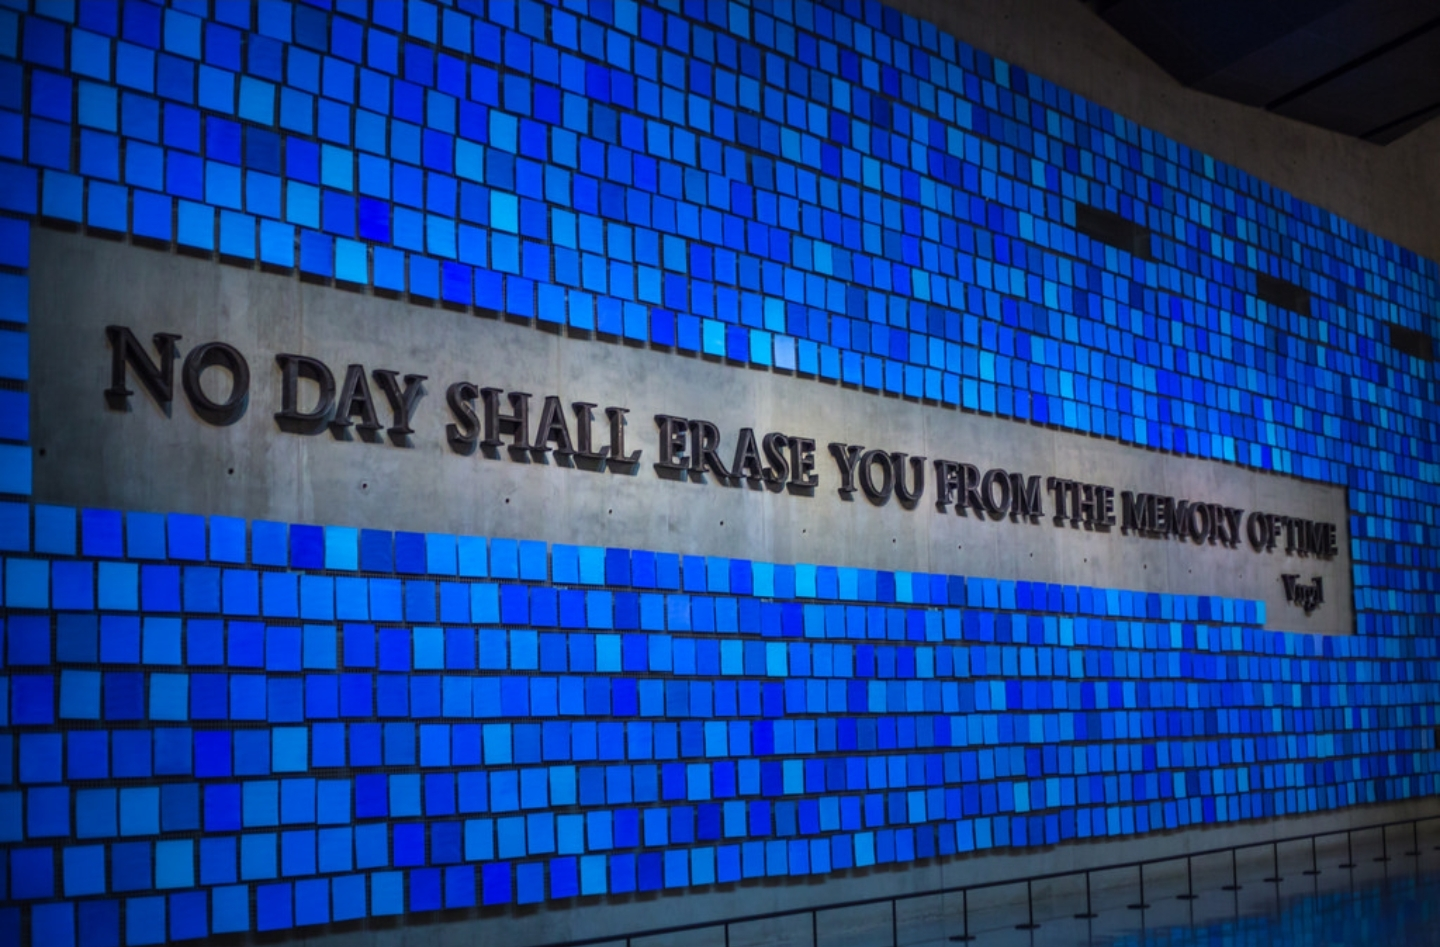 """No day shall erase you from the memory of time"" [1440×947]"